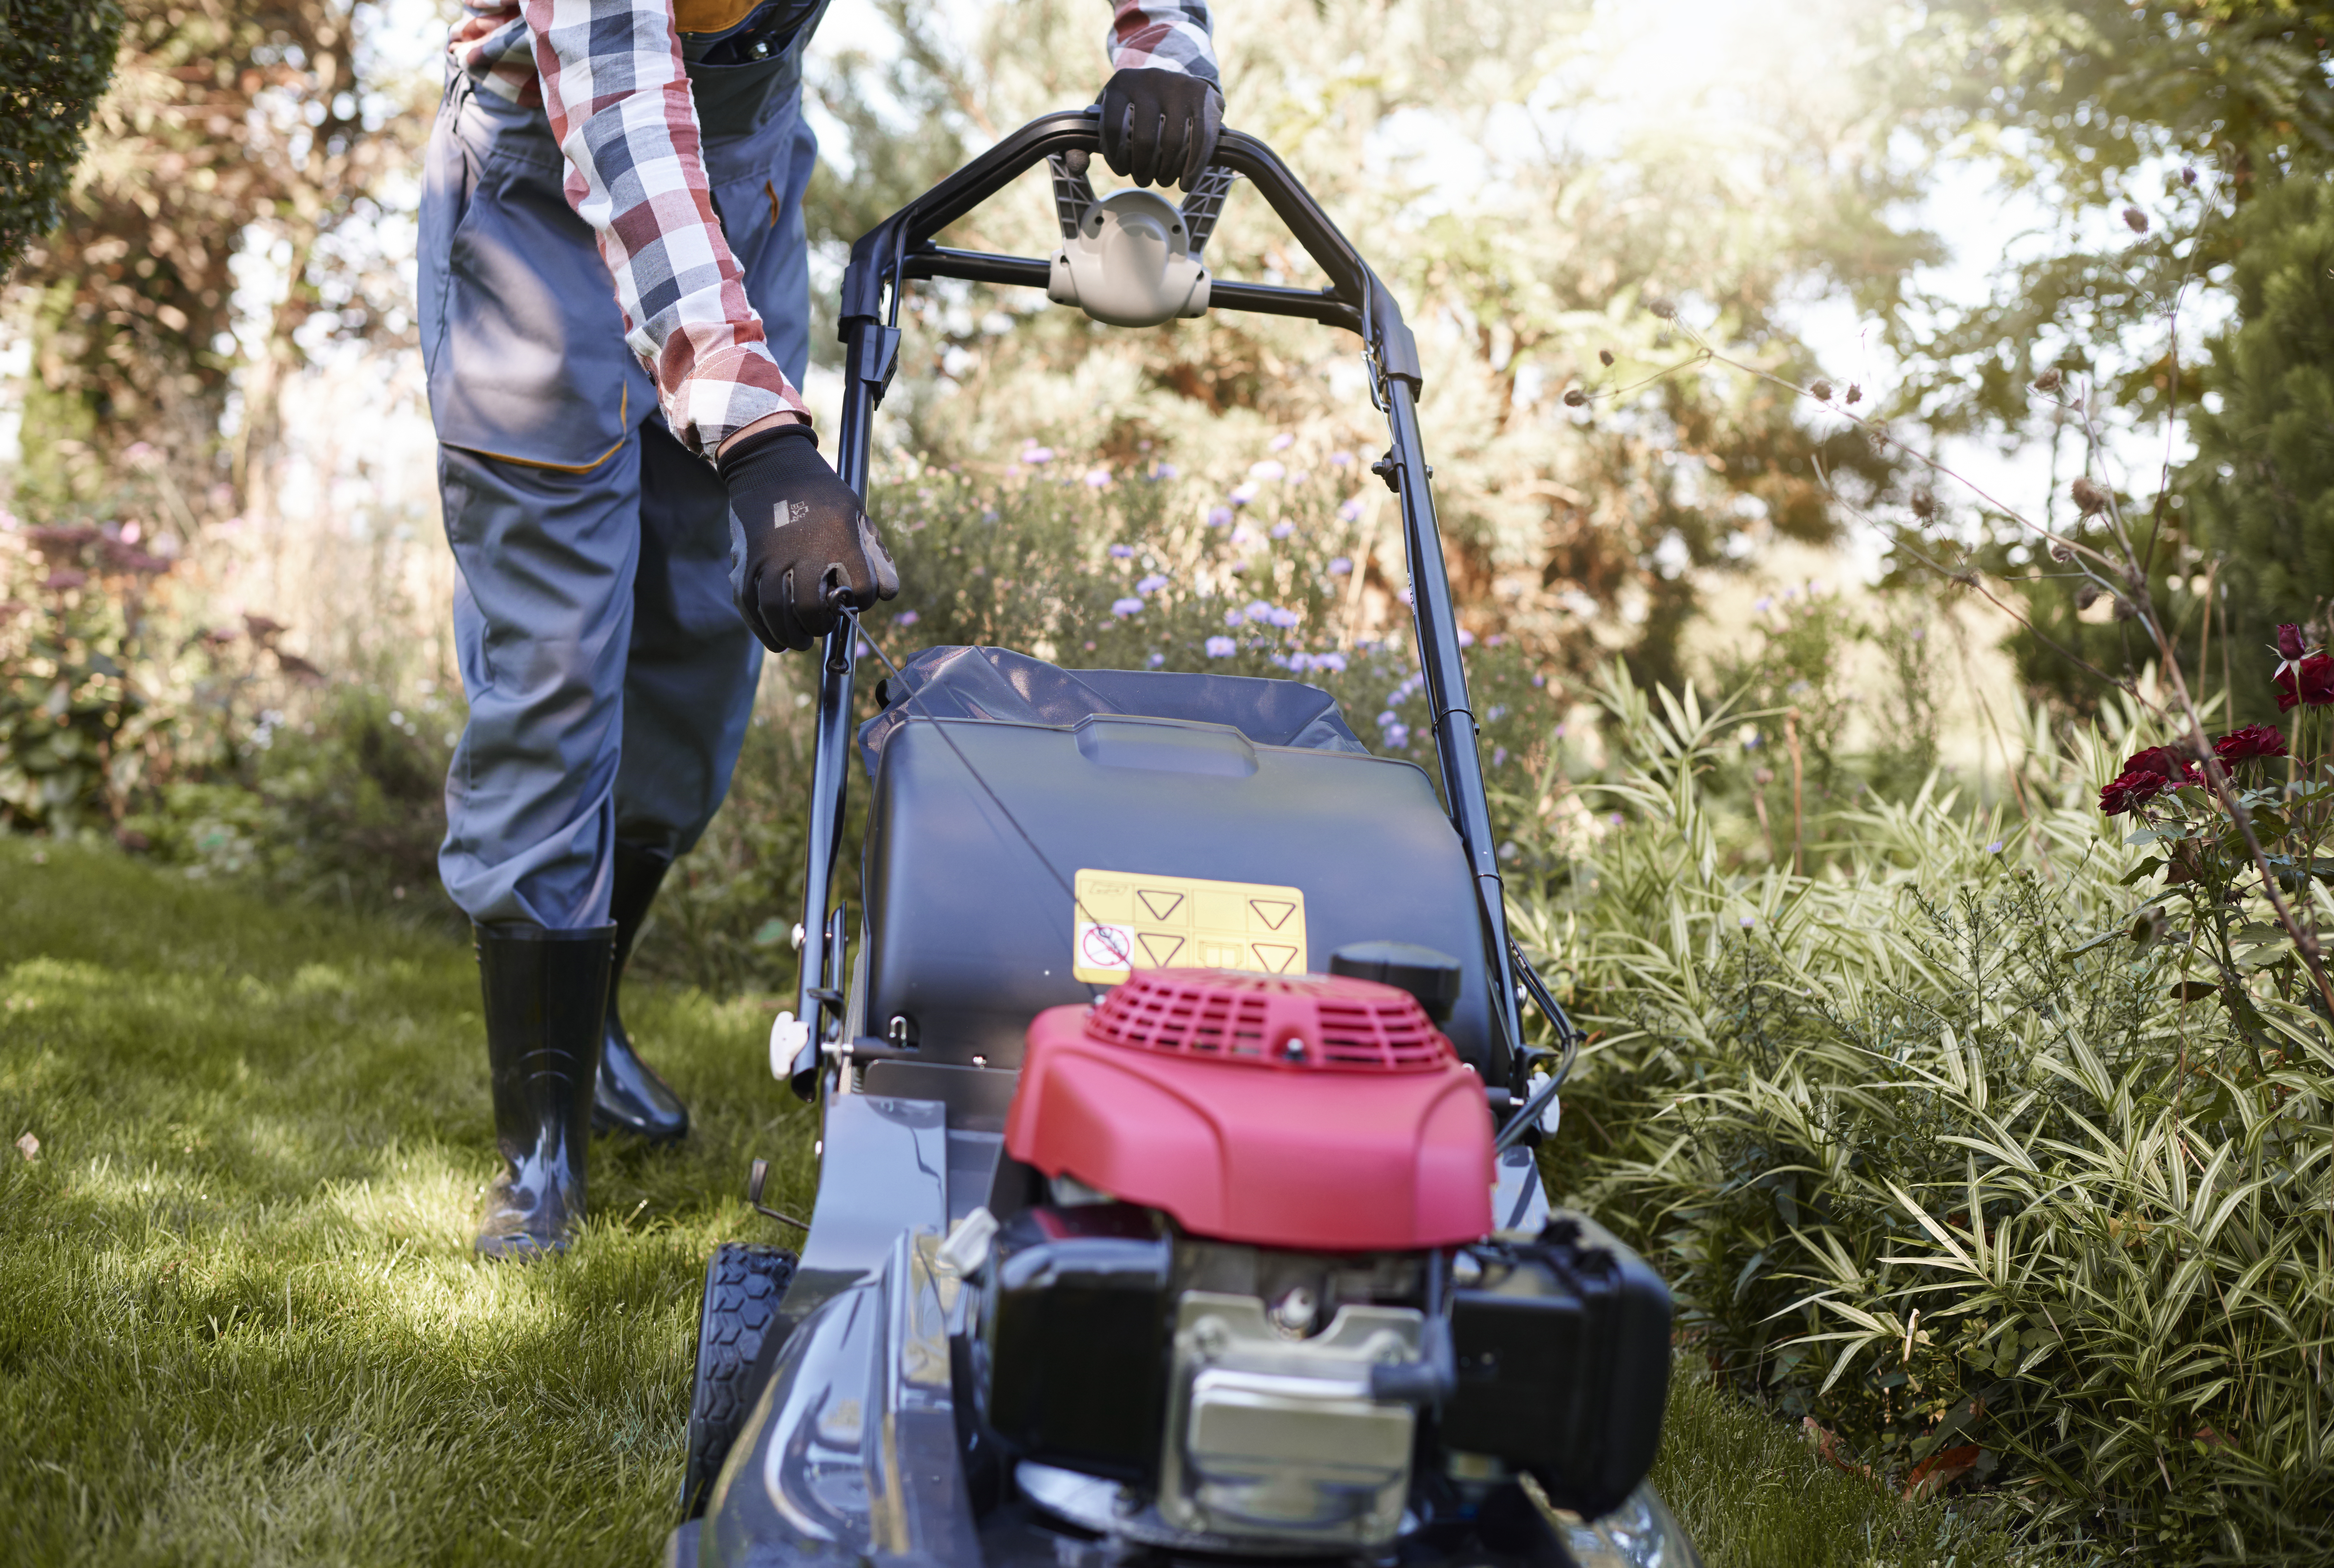 How to Know When a Lawn Mower Battery Is Dead? | Home Guides